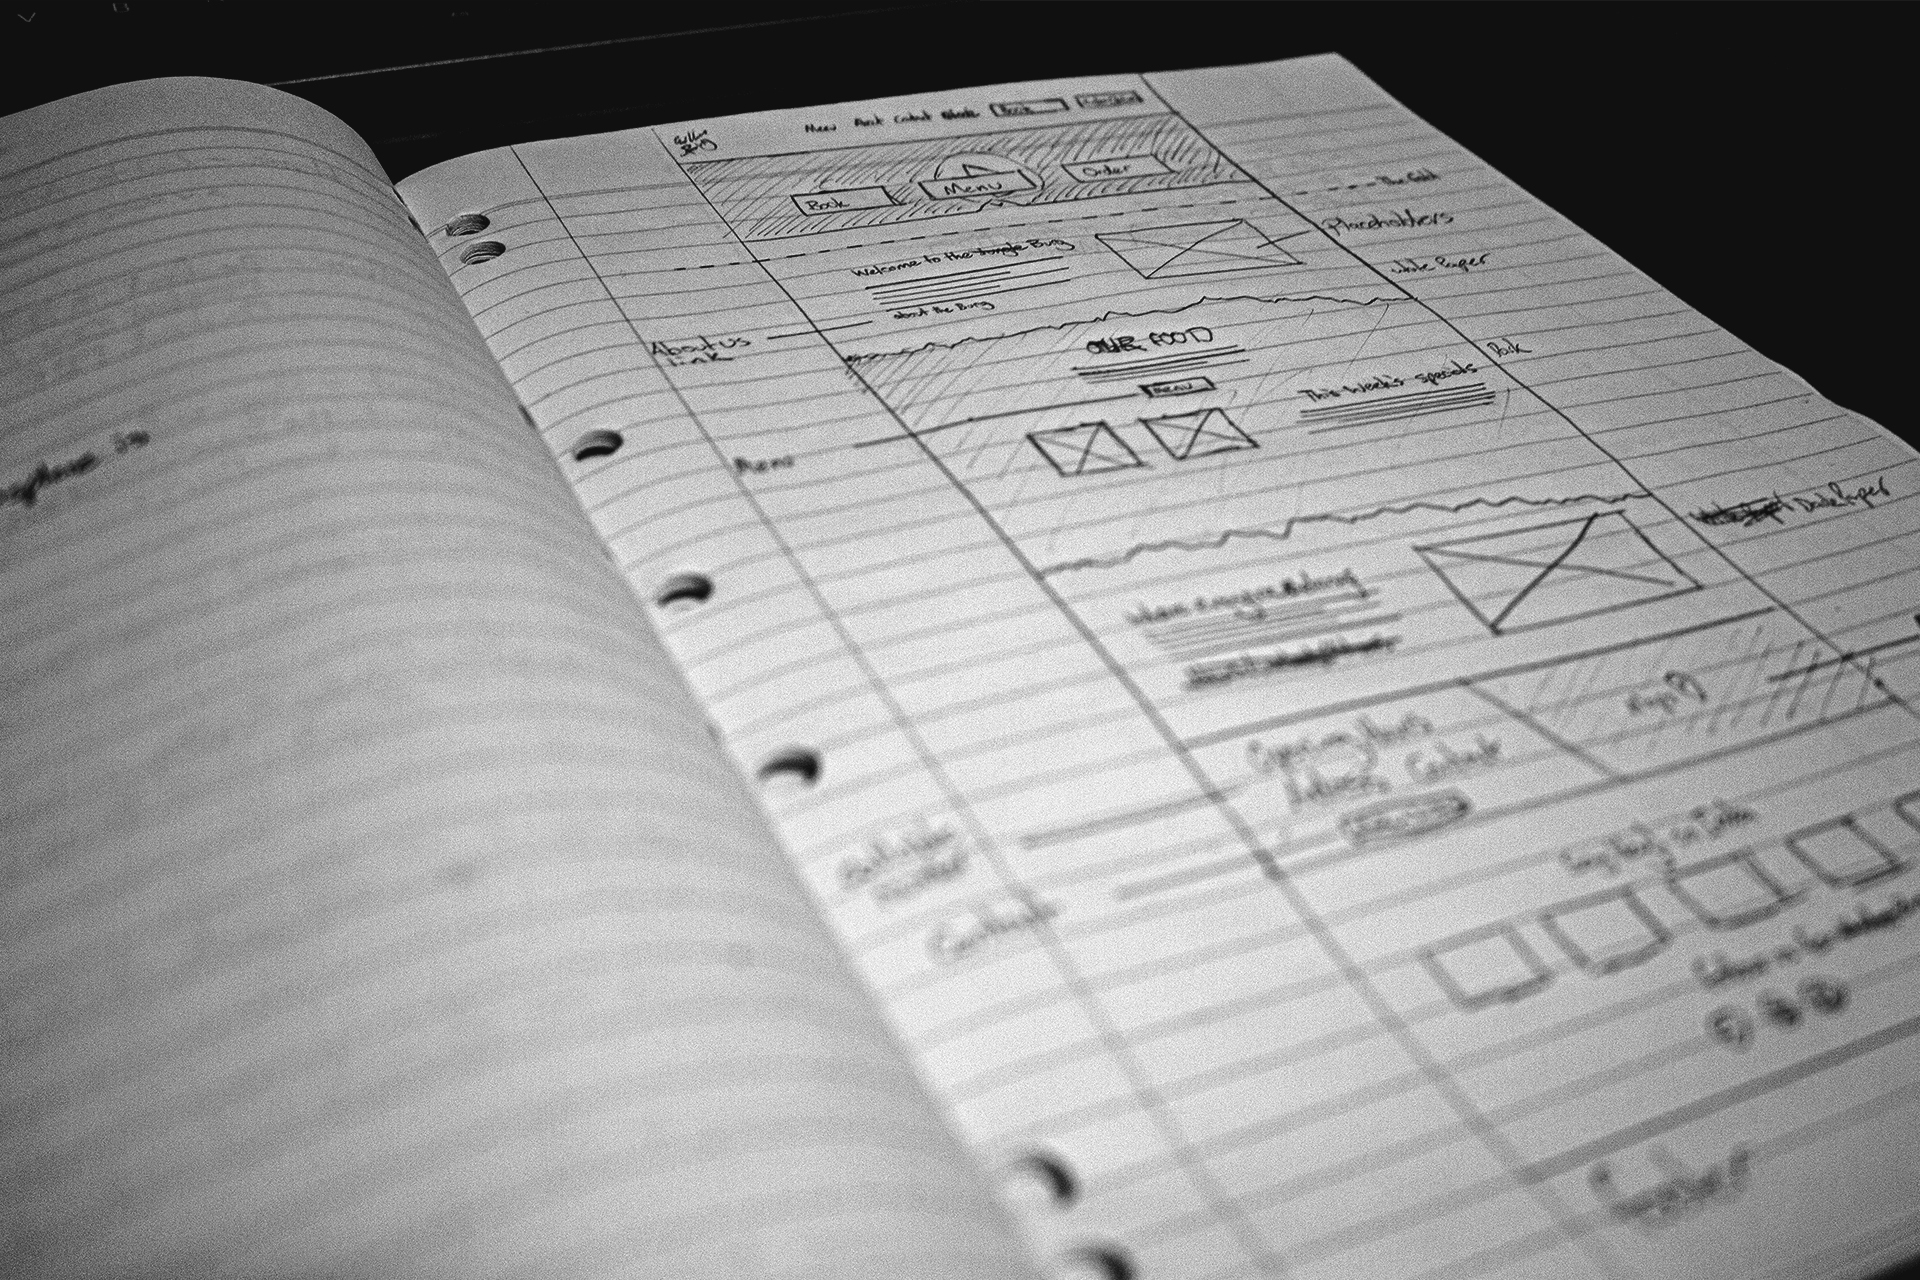 A notebook with a website wireframe drawn in it